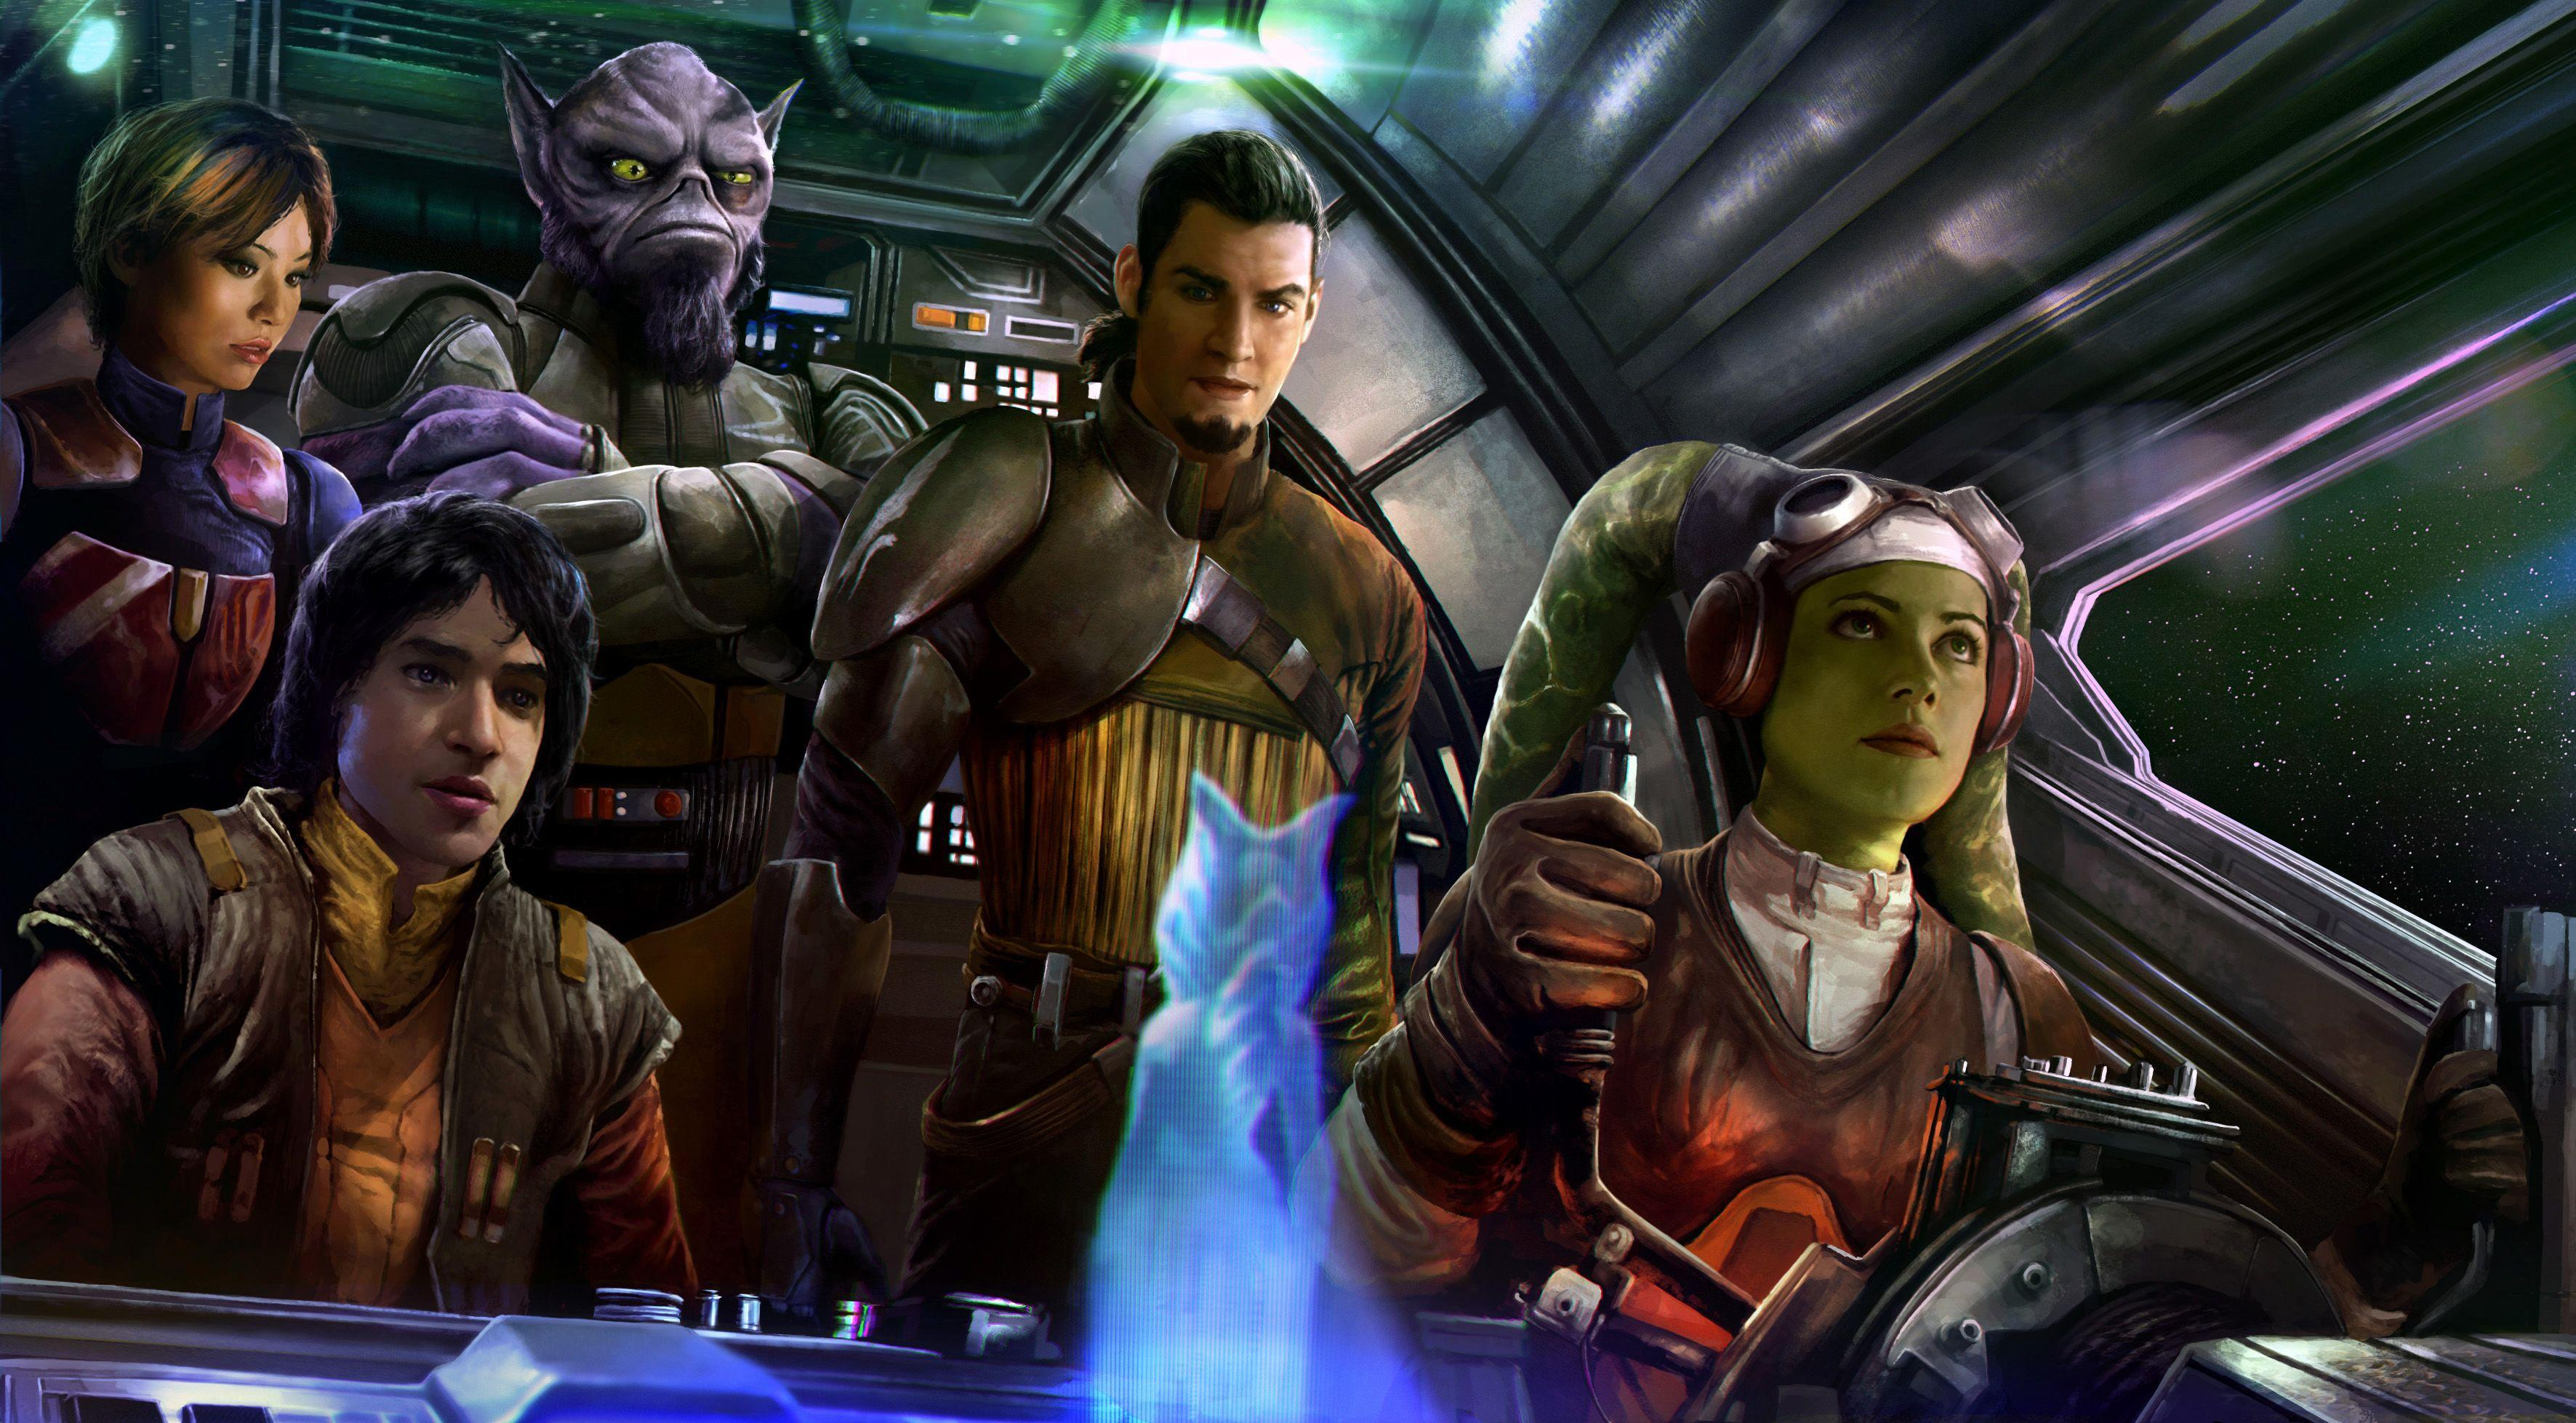 Star Wars Rebels Wallpapers Wallpaper Cave